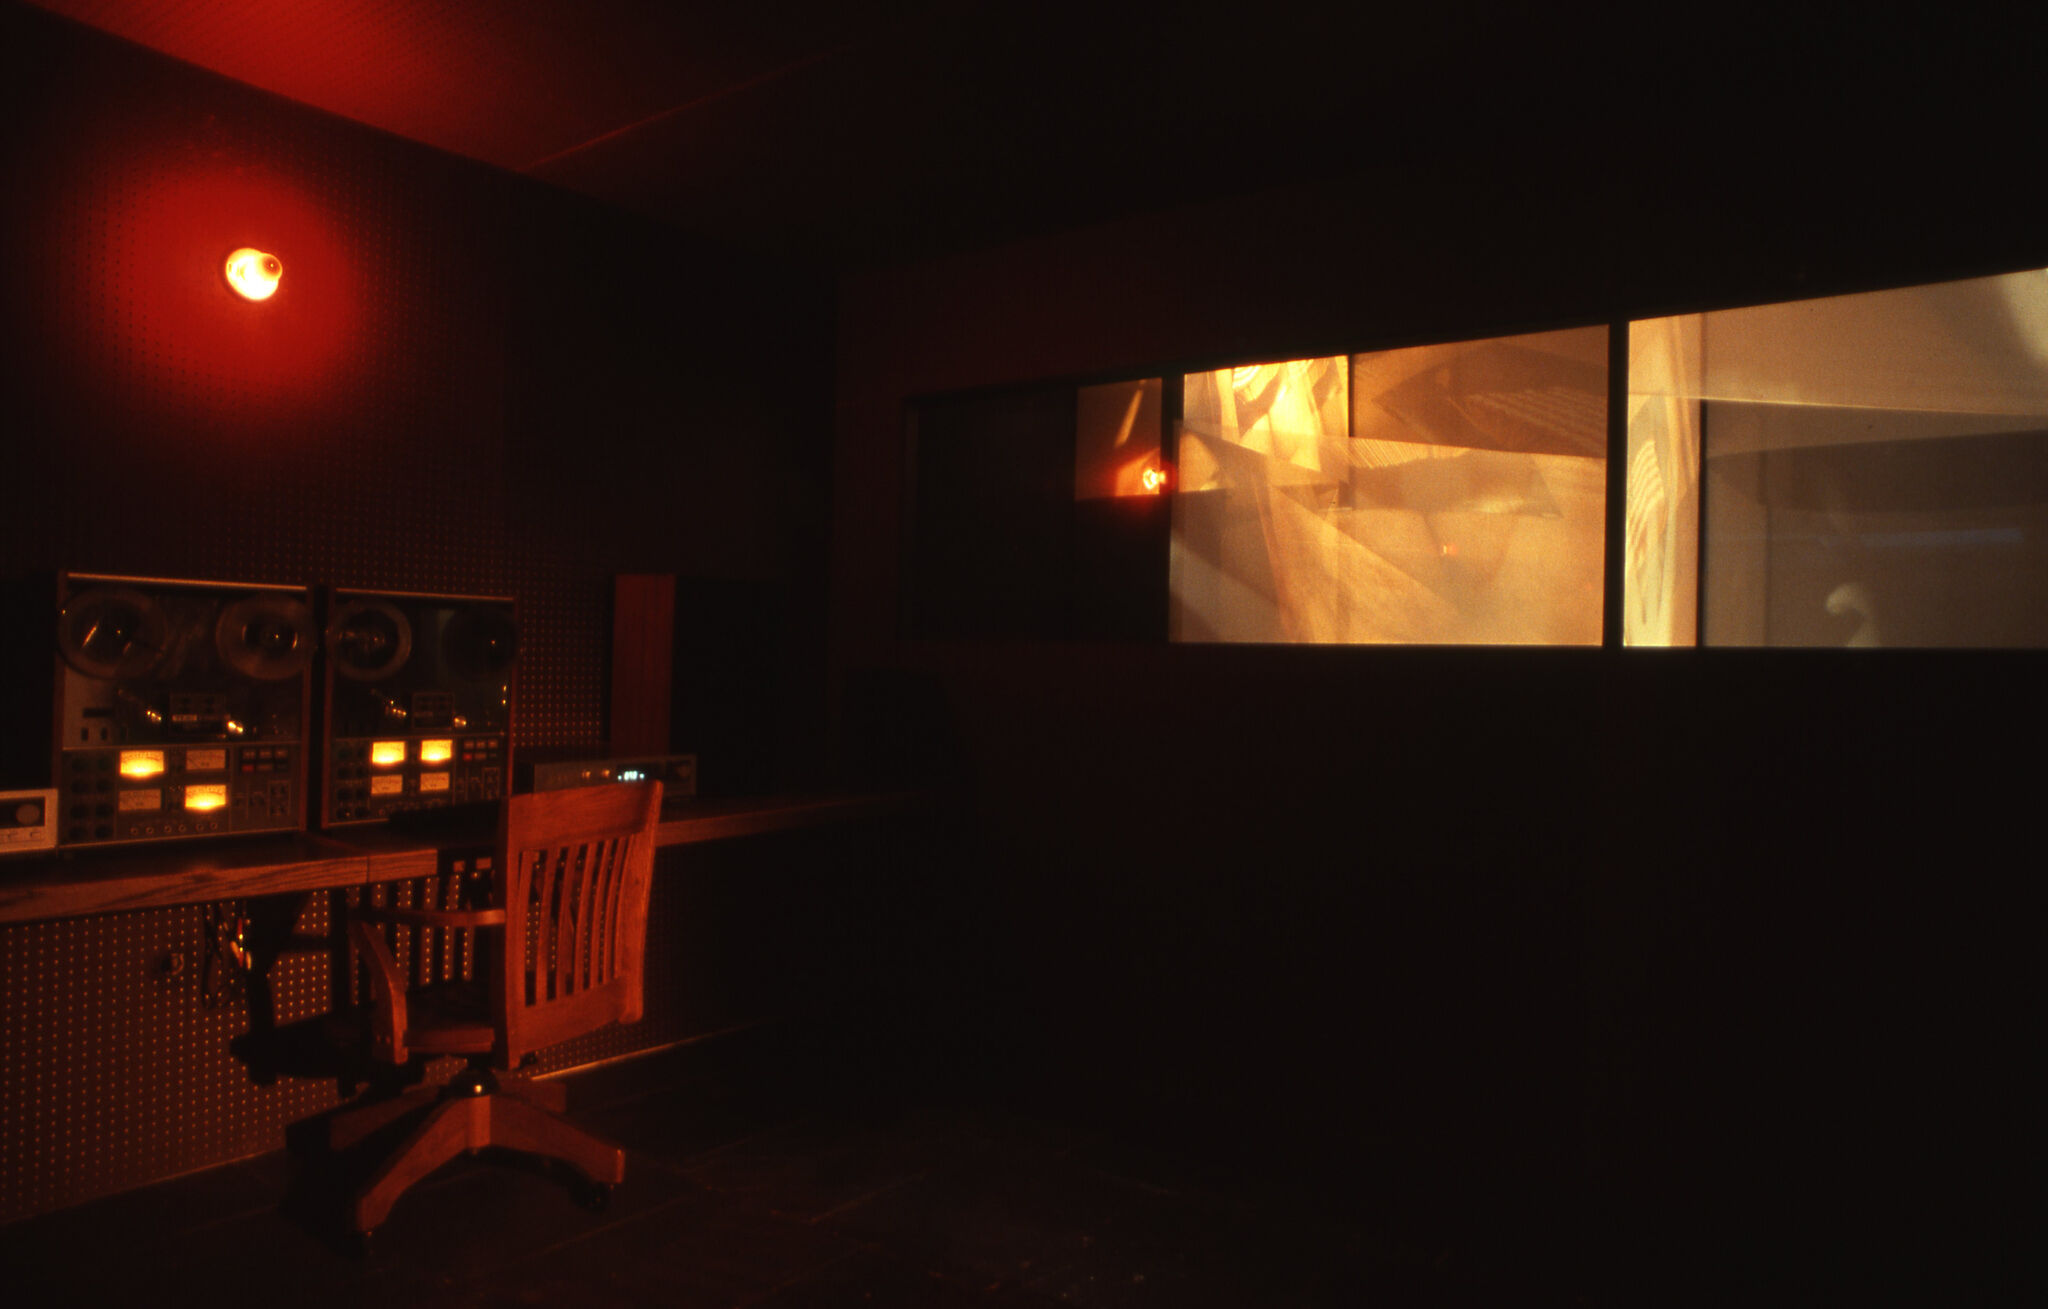 A dimly lit room with red lighting, a desk with speakers, and horizontal windows.